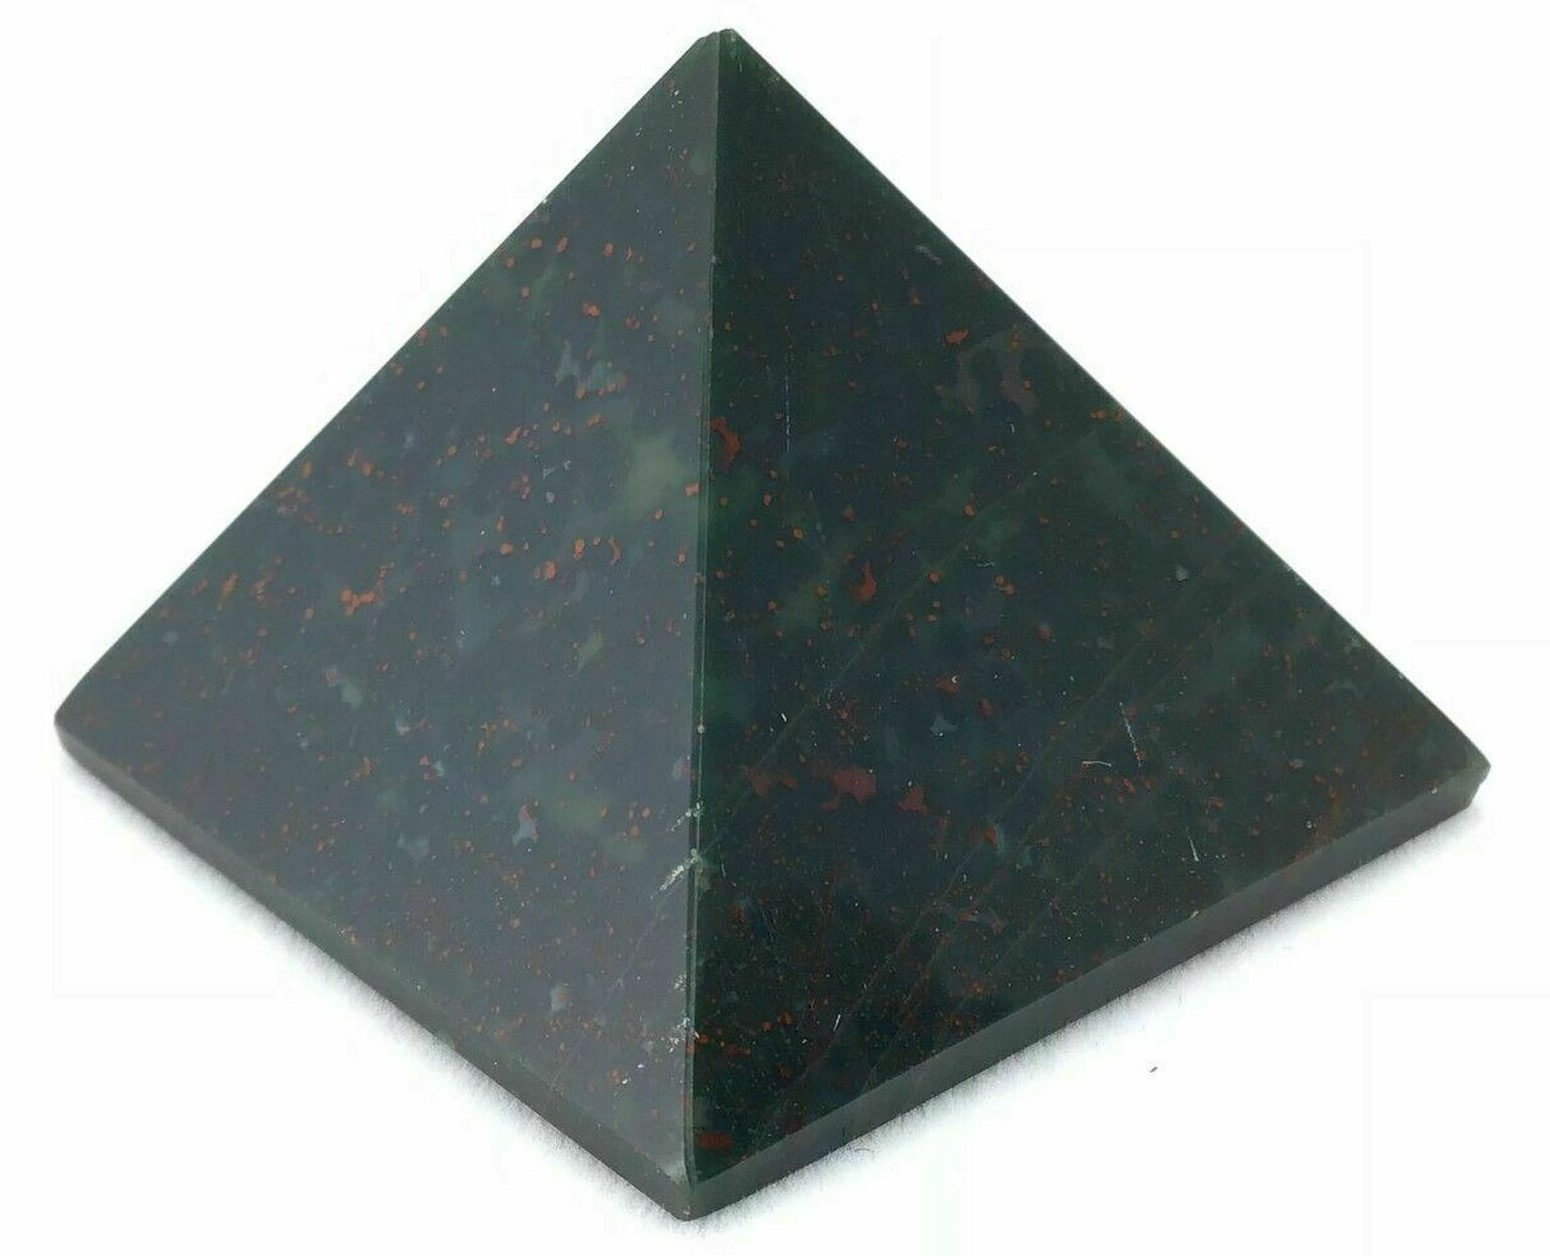 click to shop all bloodstone